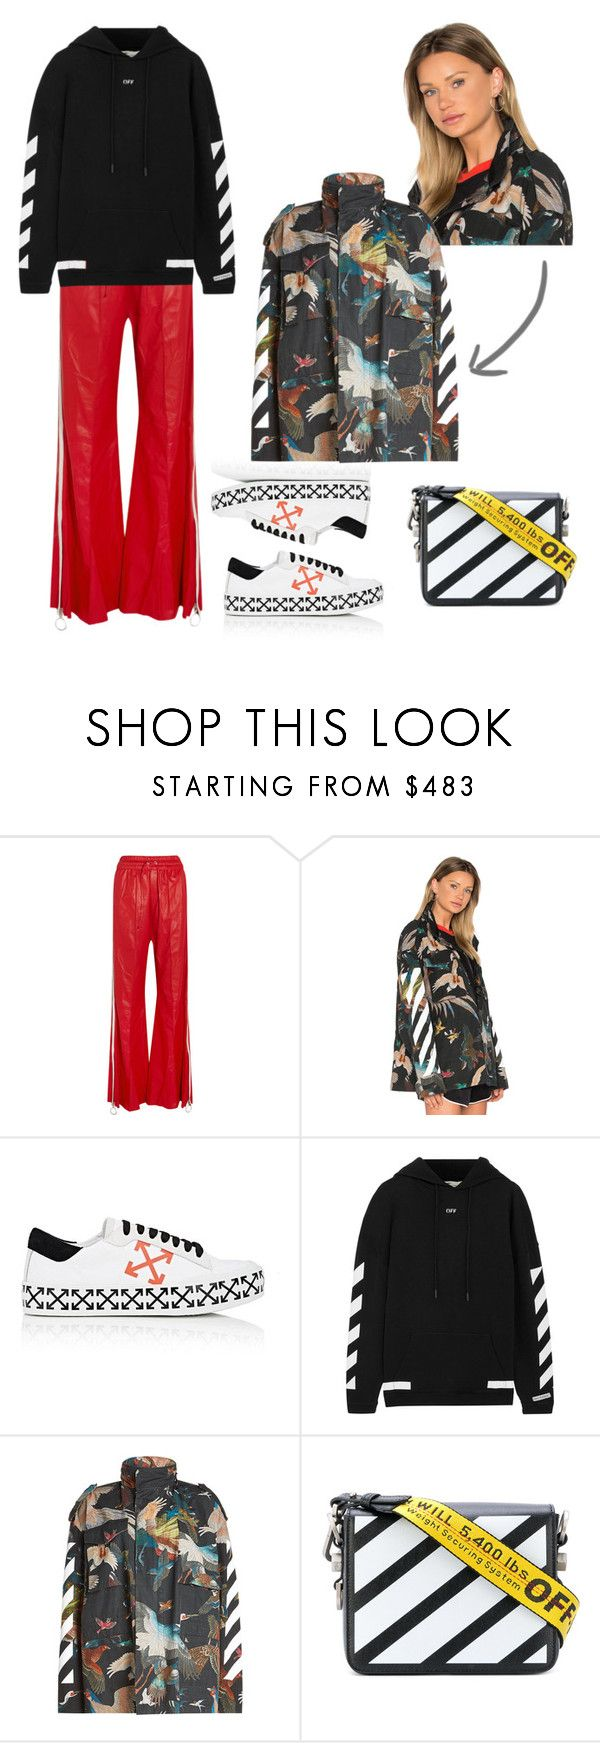 Total look - Off-White by repriza on Polyvore featuring мода and Off-White